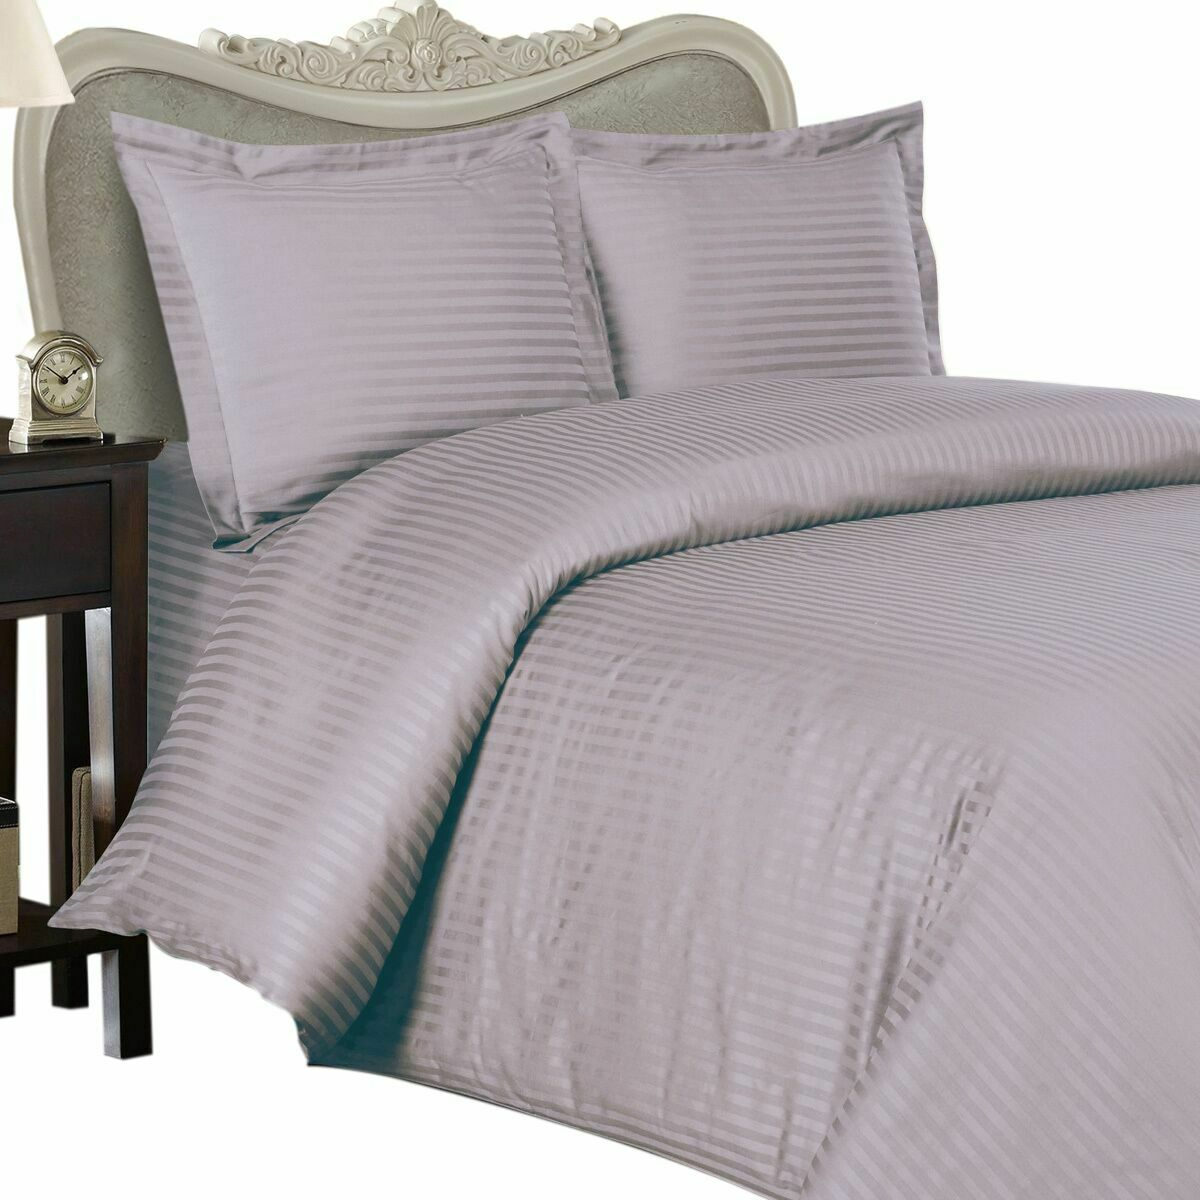 1500 Thread Count 100% Egyptian Cotton Sheet Set OLYMPIC QUEEN Lavender Stripe